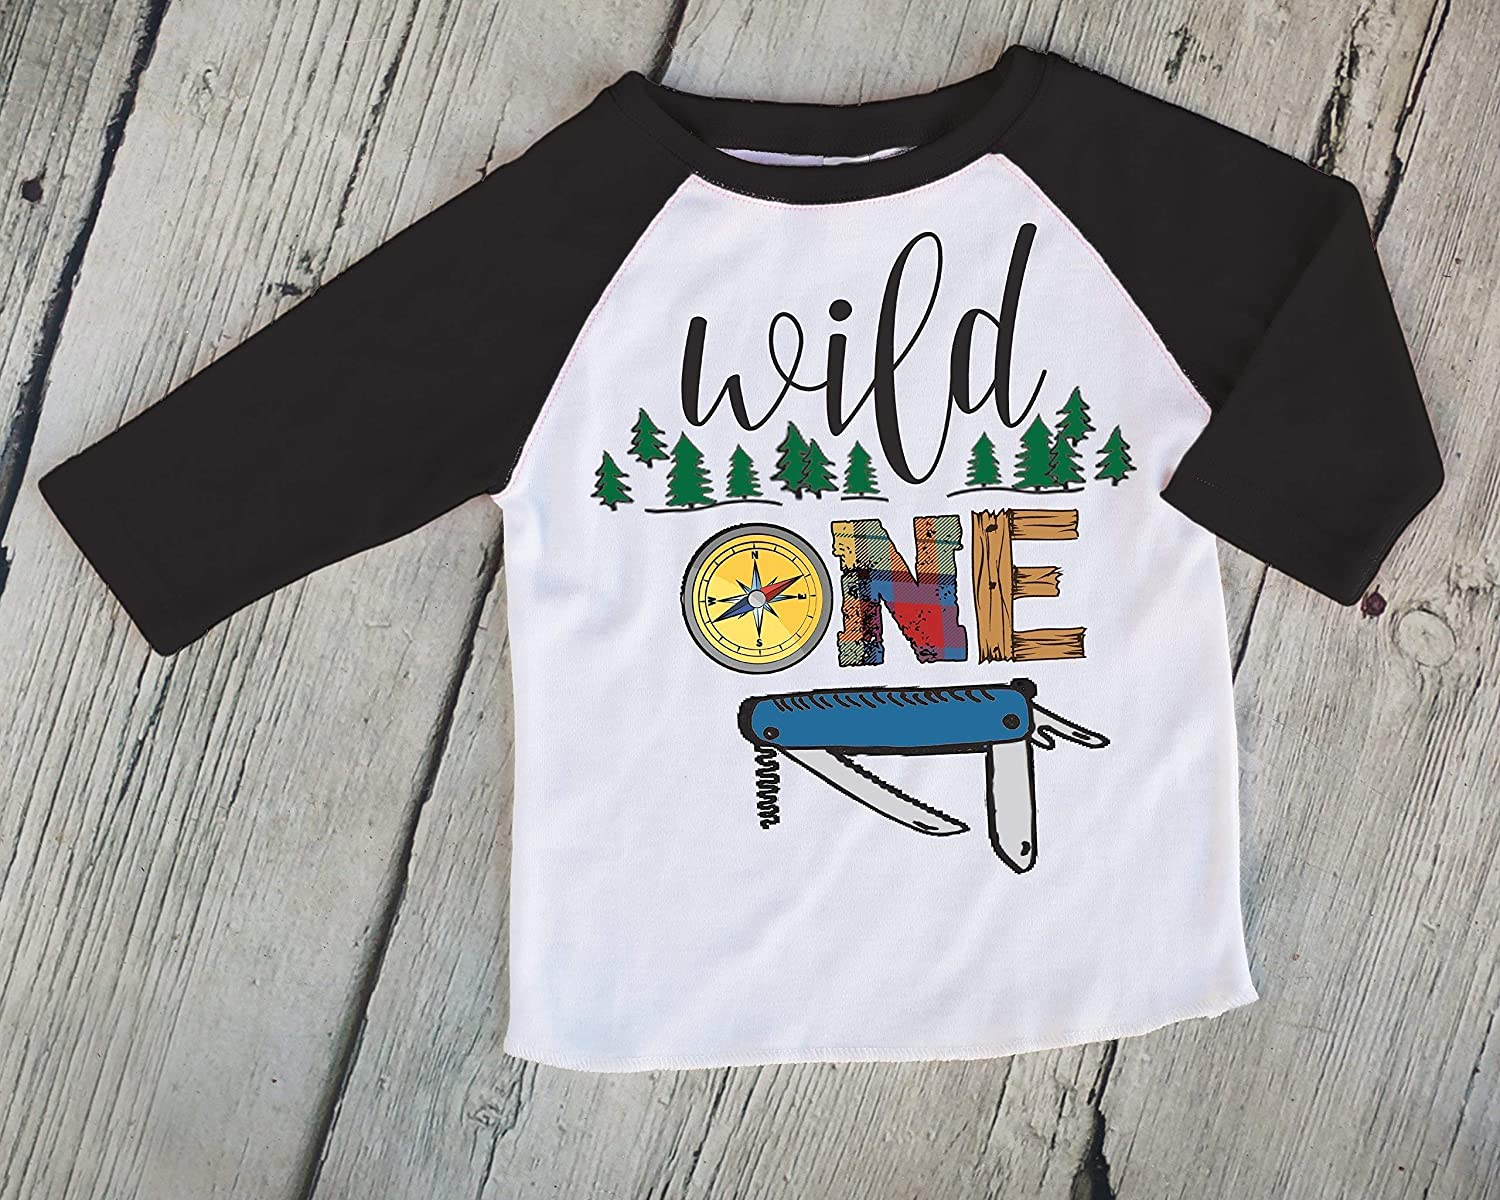 Amazon Wild One Boys Outdoorsy Black Raglan Shirt Cute First Birthday Baseball Tee Handmade